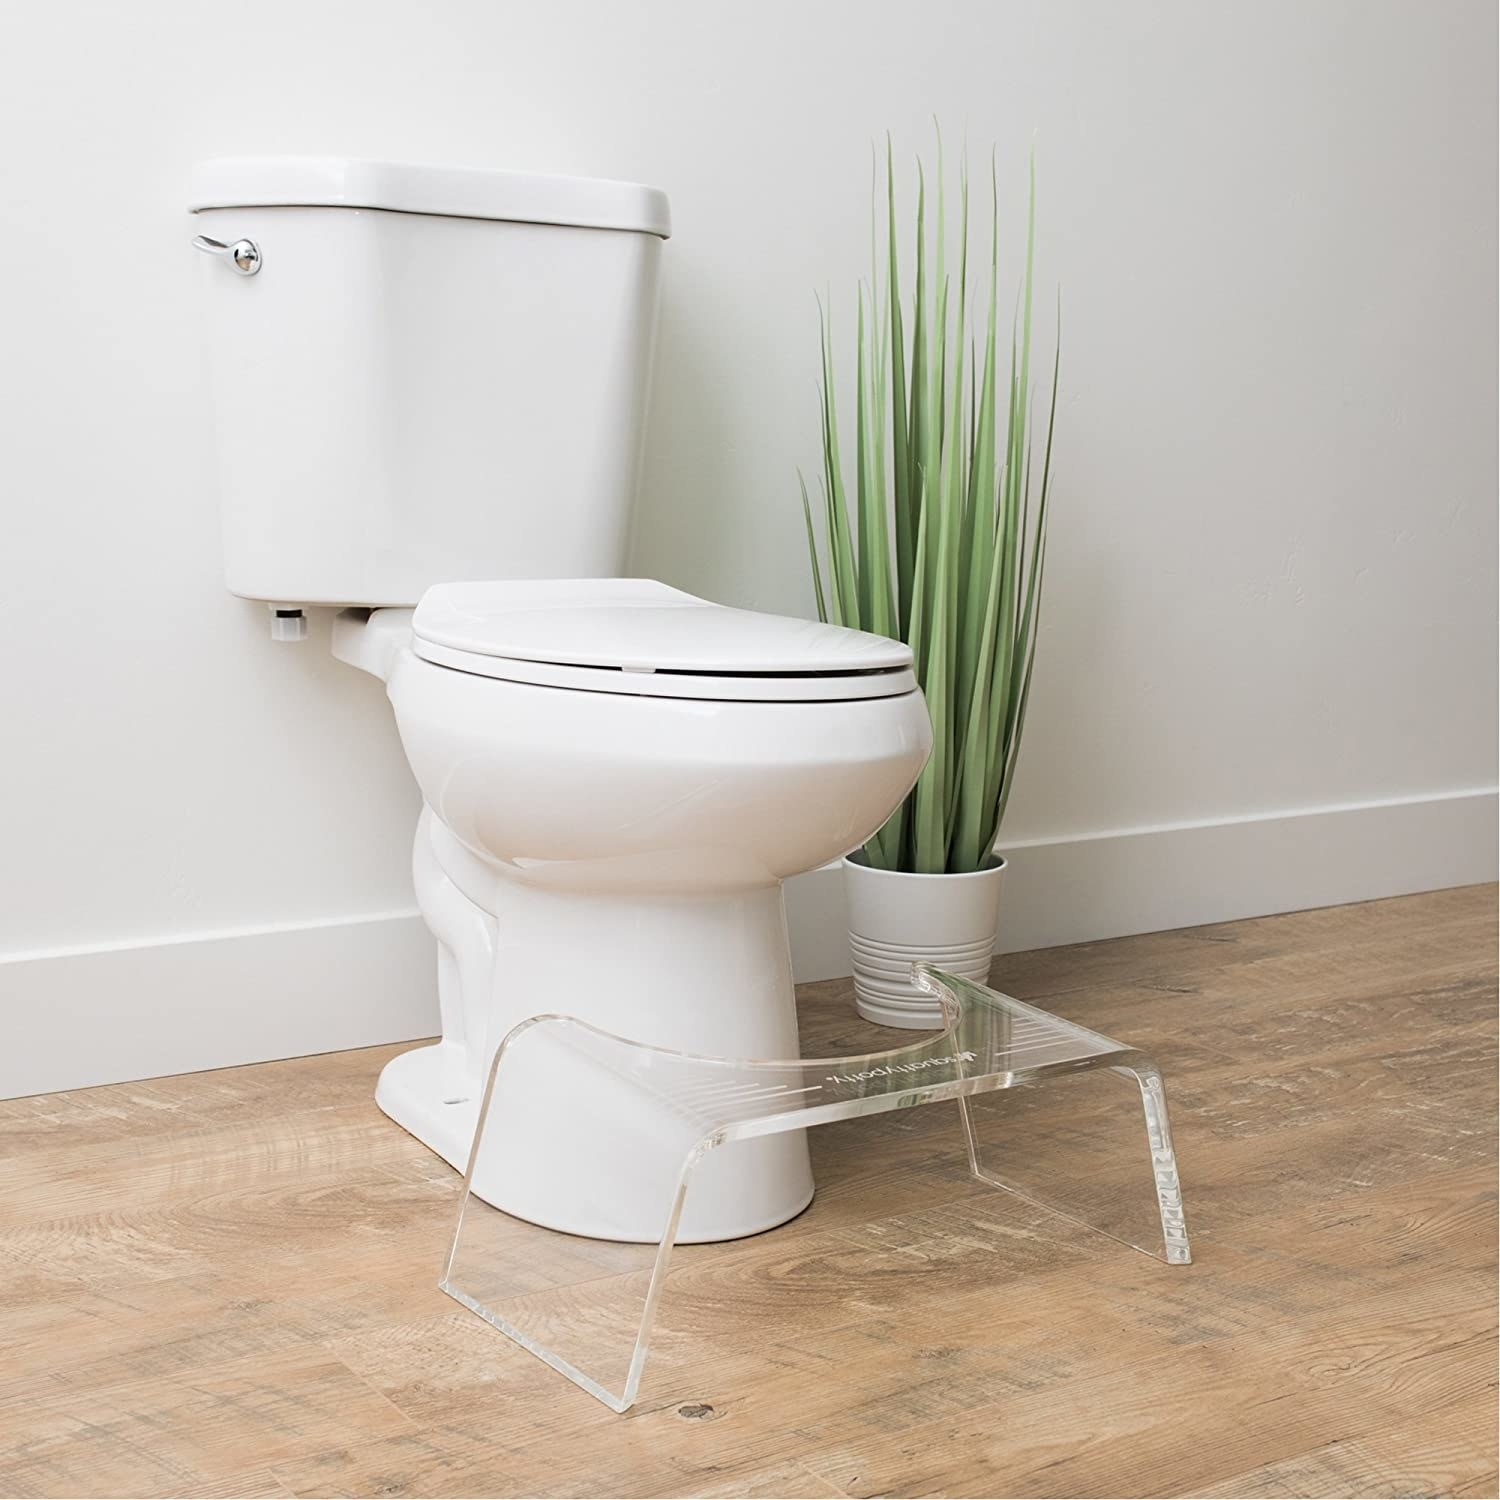 and acrylic squatty potty bench under a toilet